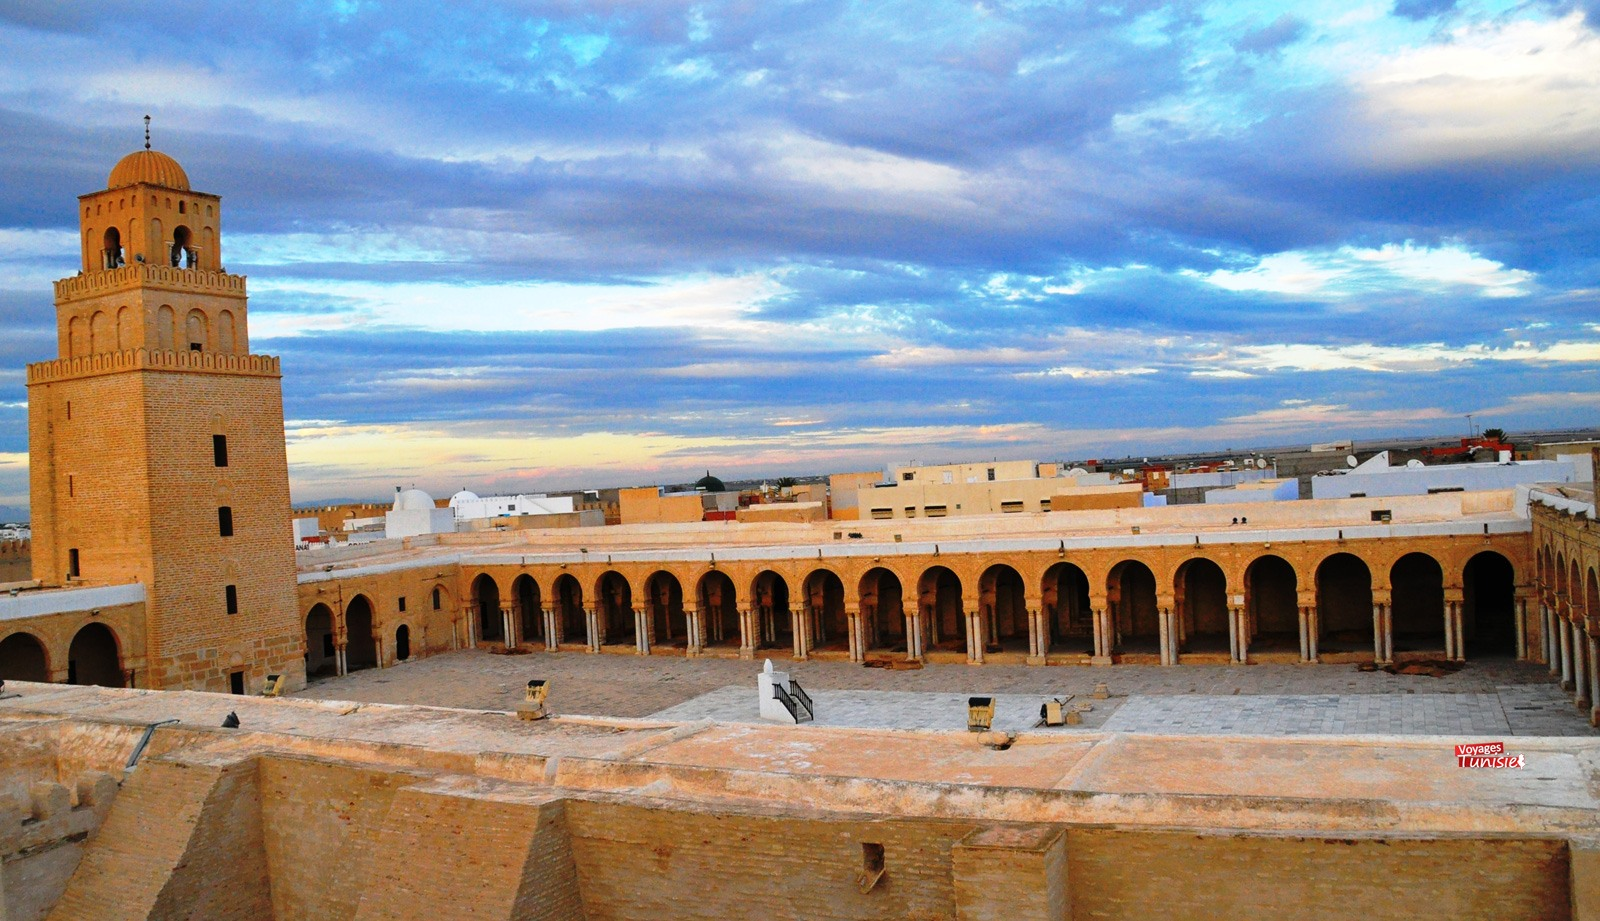 Visit the Sacred Mosque of Uqba